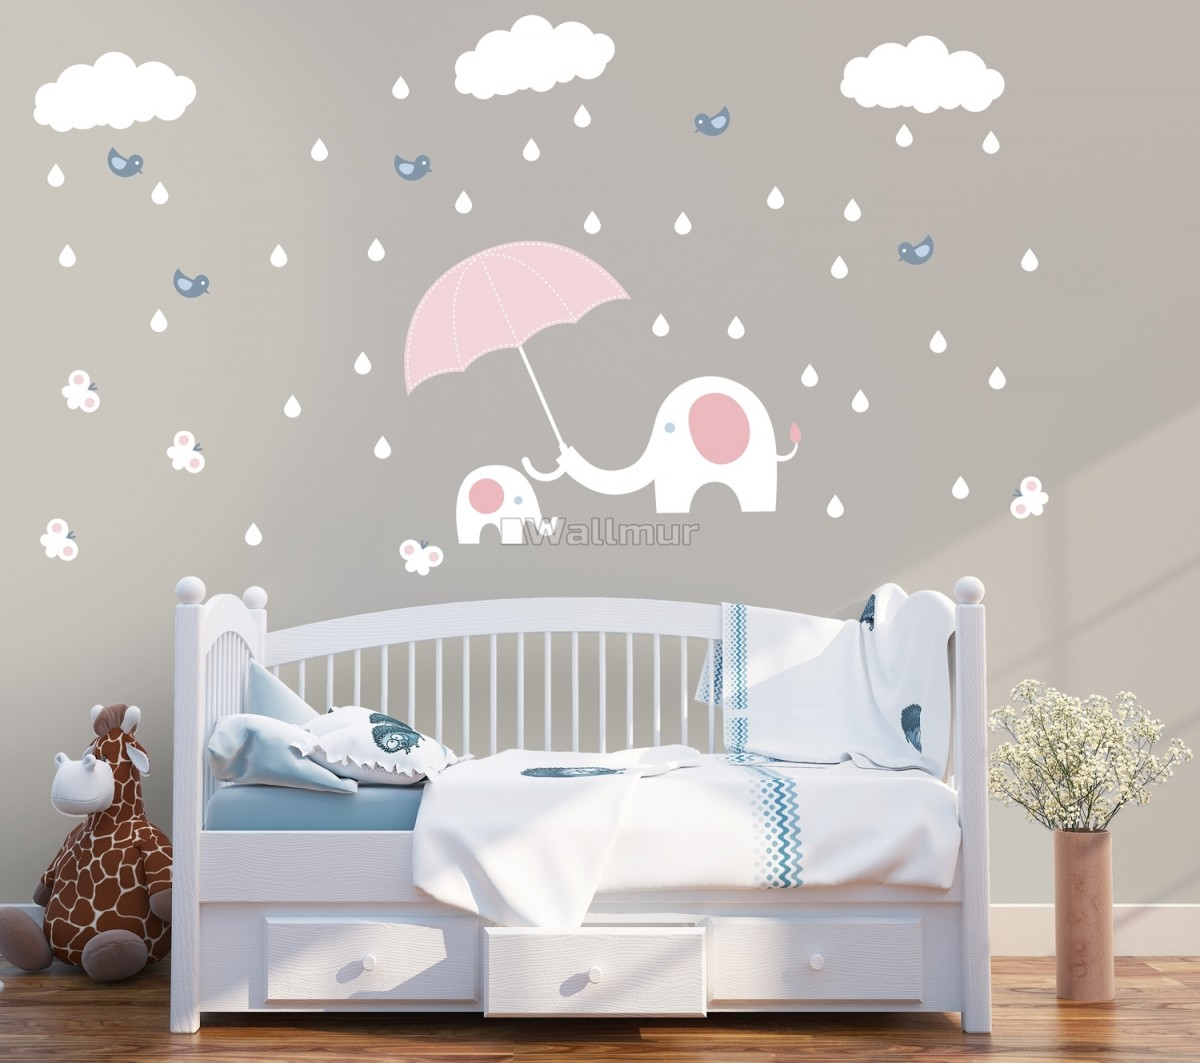 Kids Calf Elephant with White Raindrops and Little Butterfly Wall Decal Sticker